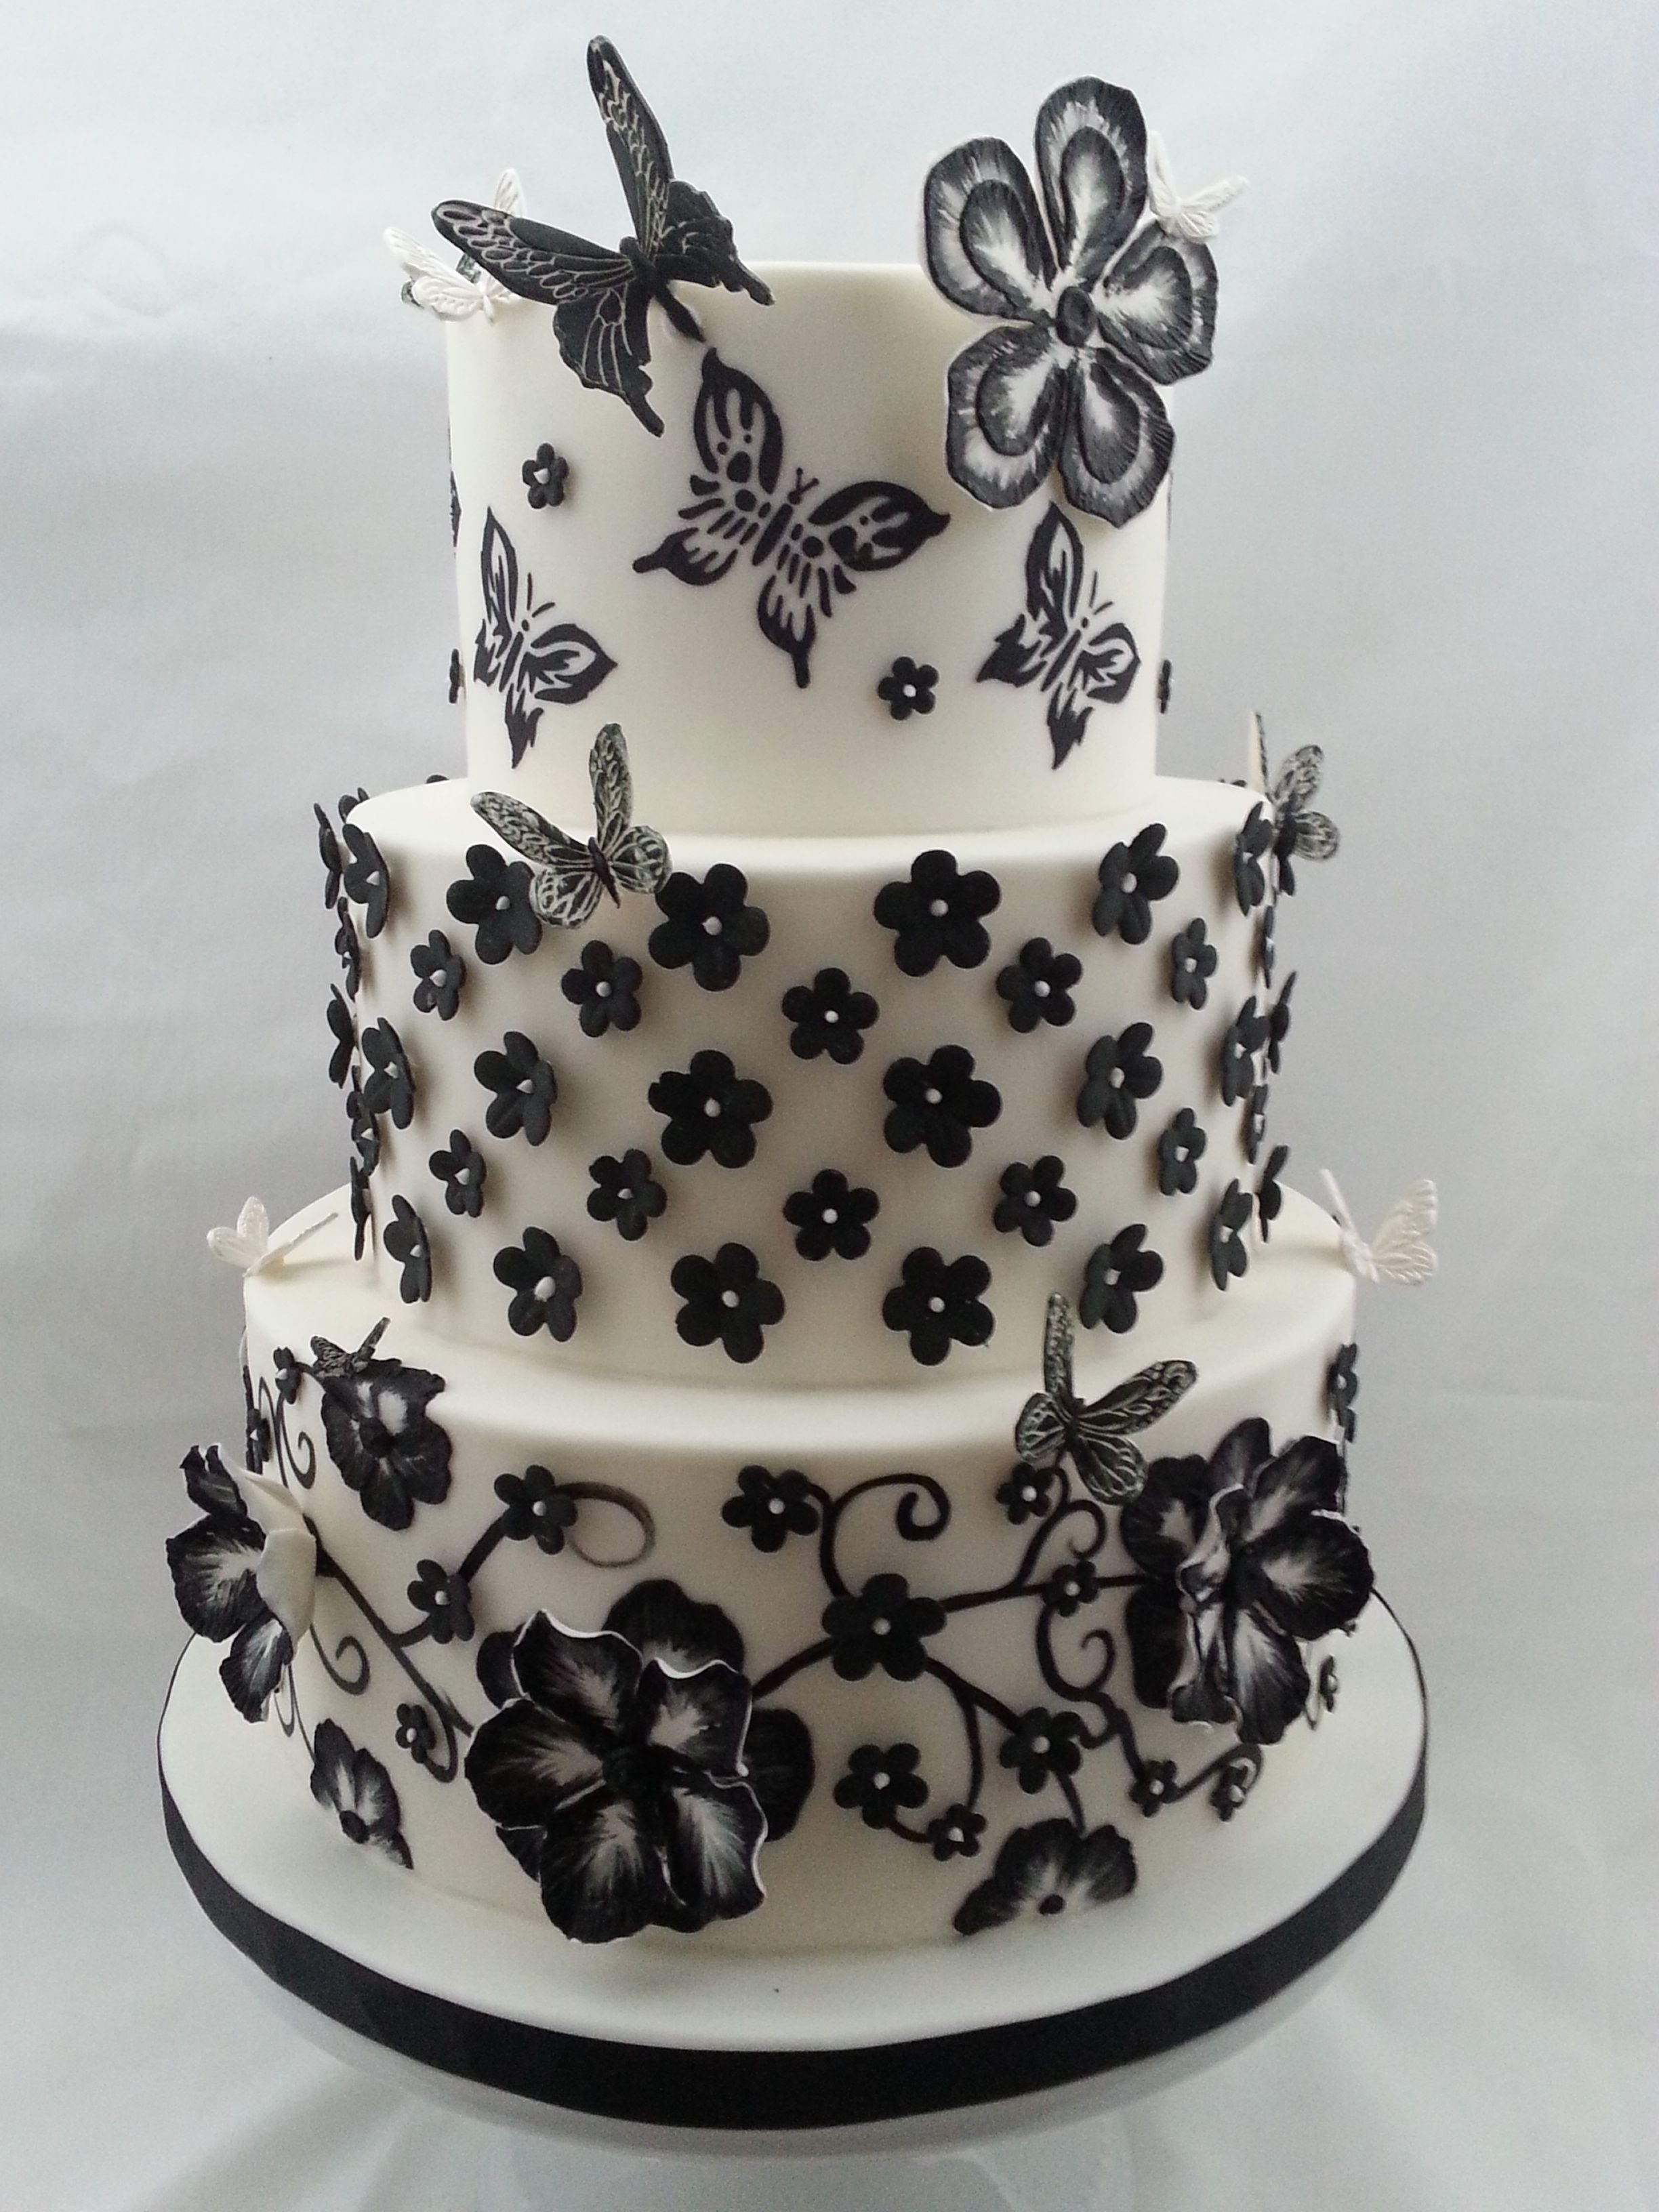 Brush Embroidery Flowers Directly On Cake And Gumpaste Flowers With